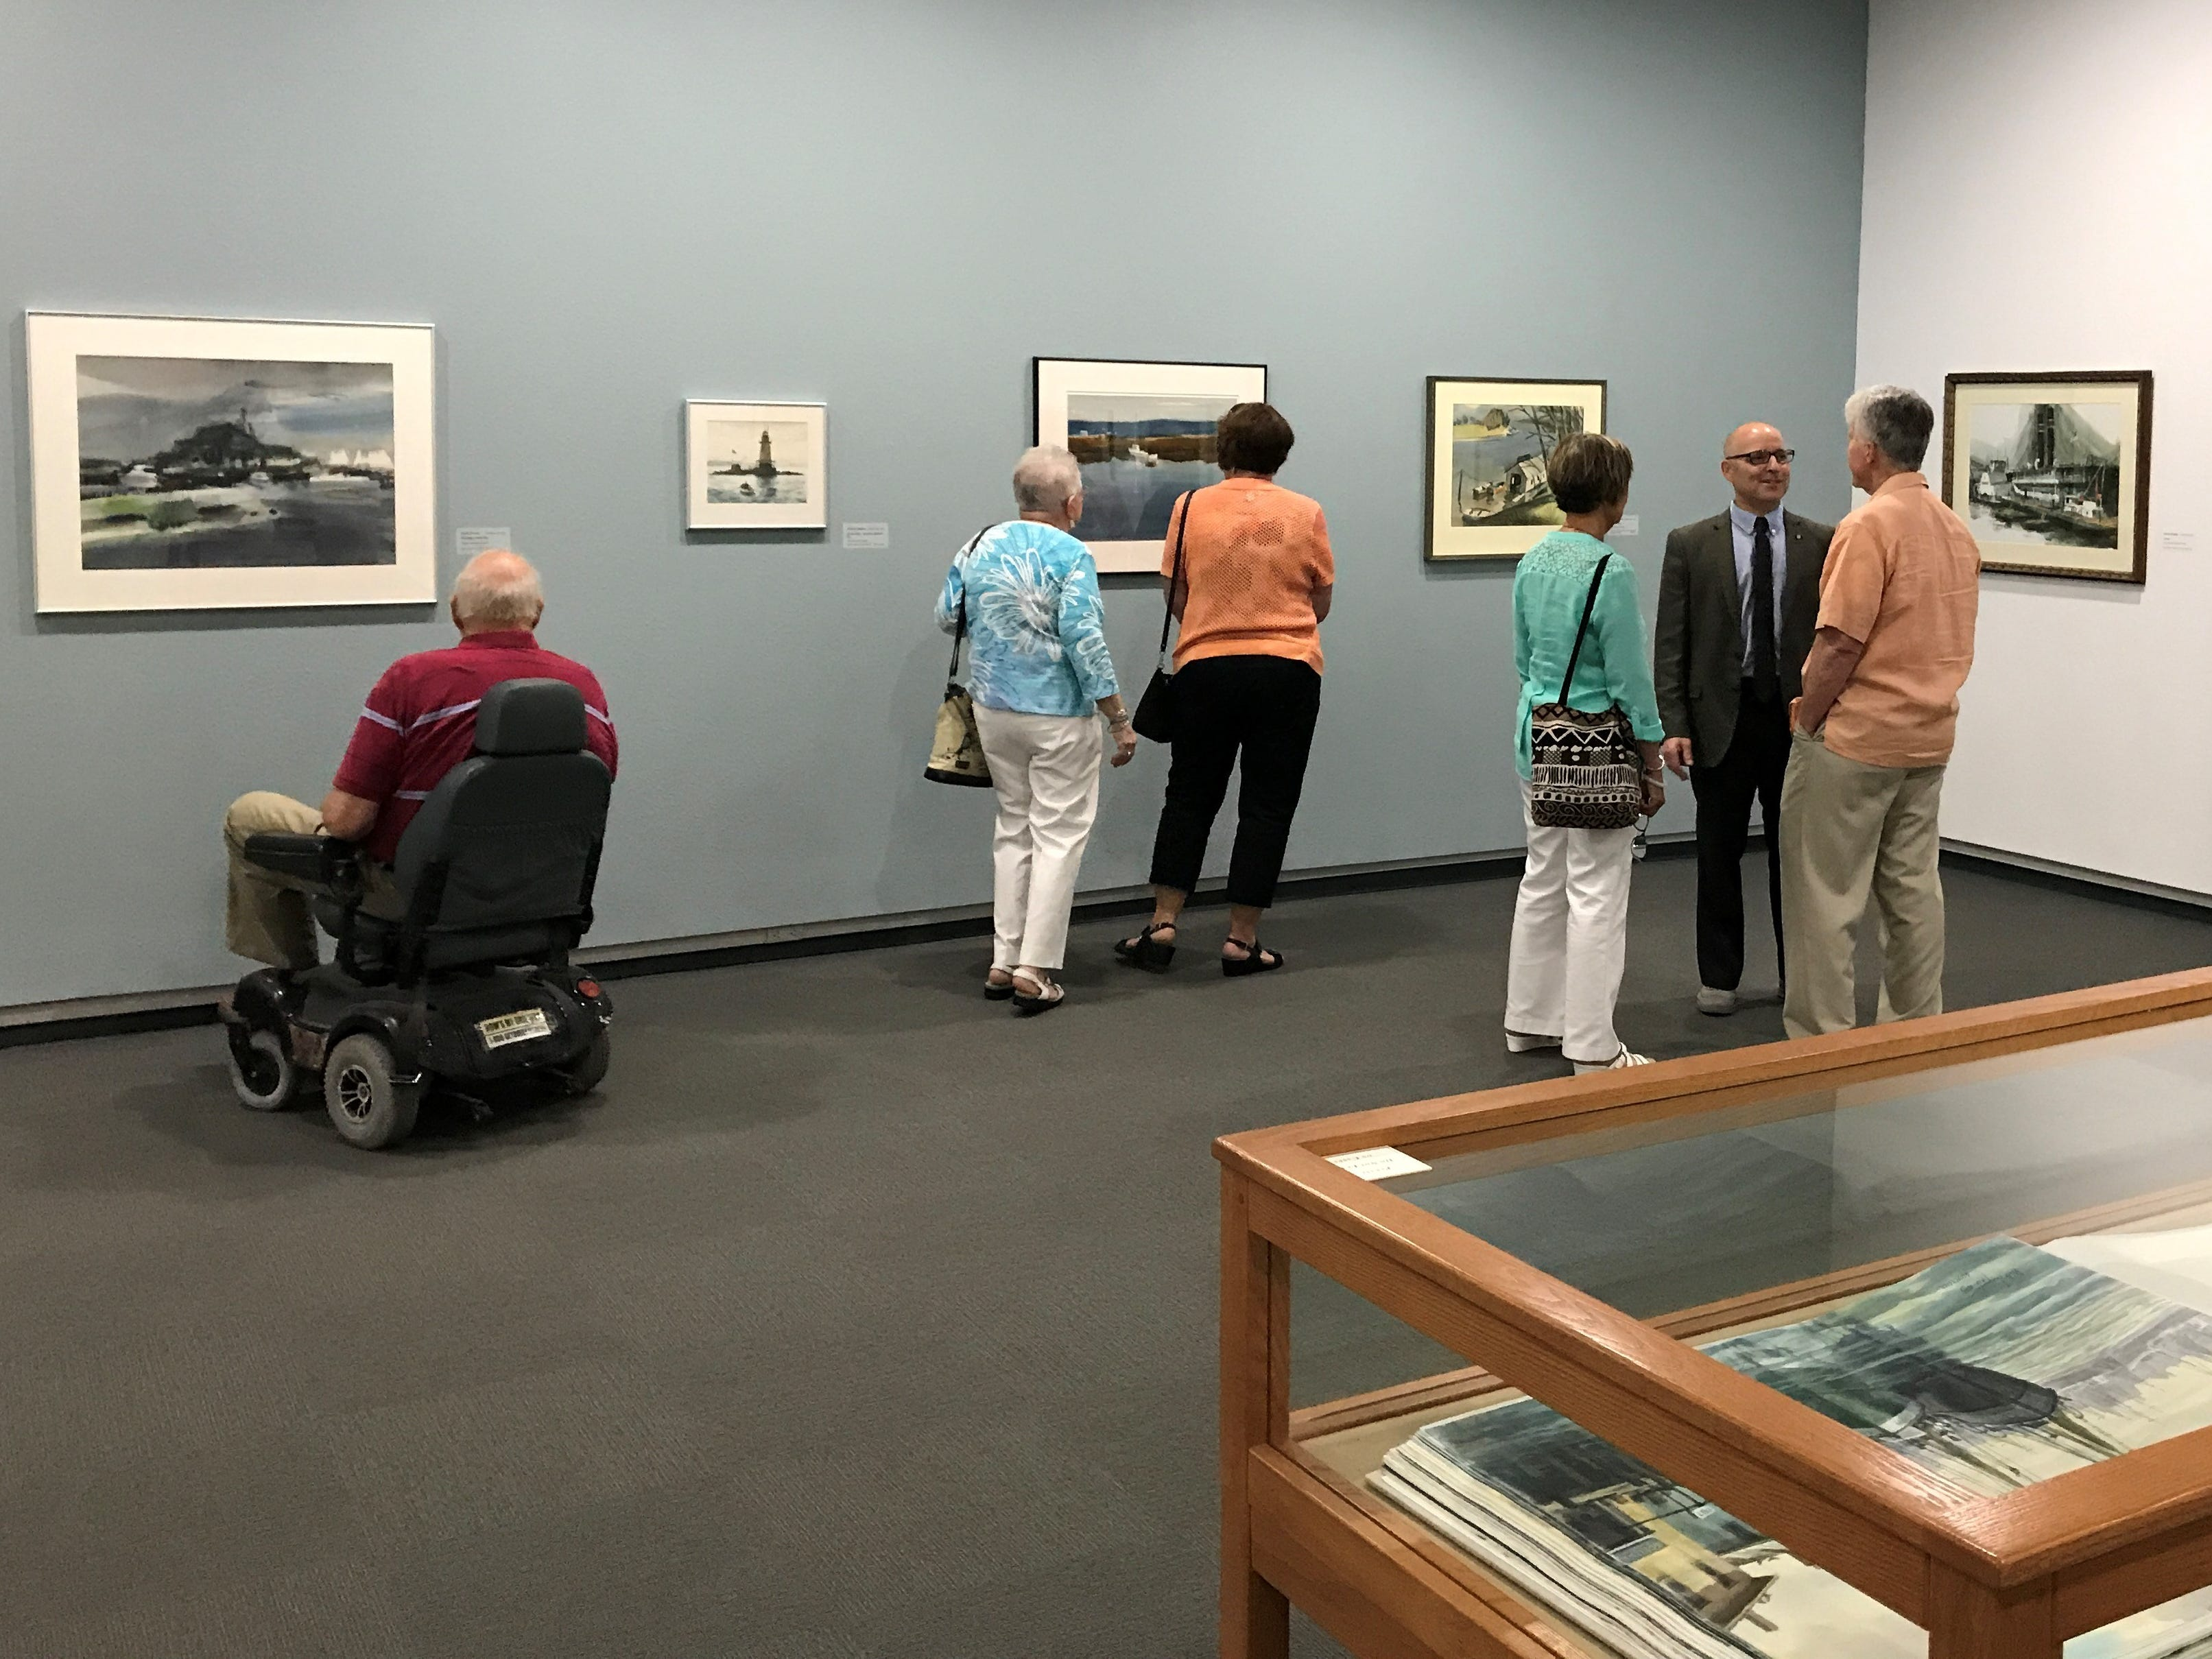 Go see some art. The Springfield Art Museum is located at 1111 E. Brookside Dr. For more information check out their website at https://www.sgfmuseum.org/